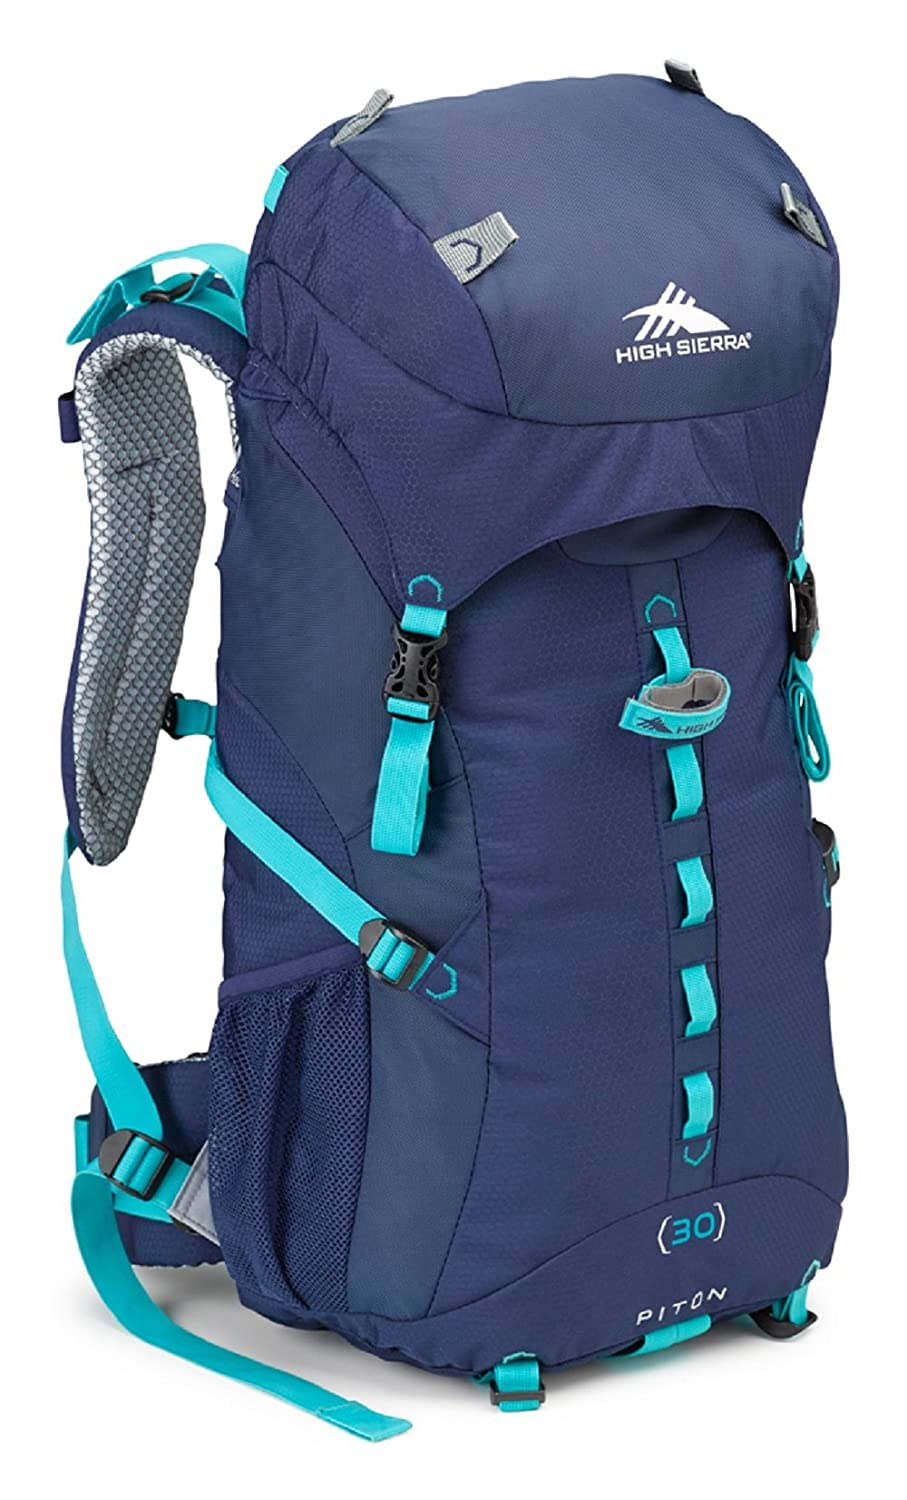 High Sierra Classic 2 Series Piton 30 Women s Frame Pack